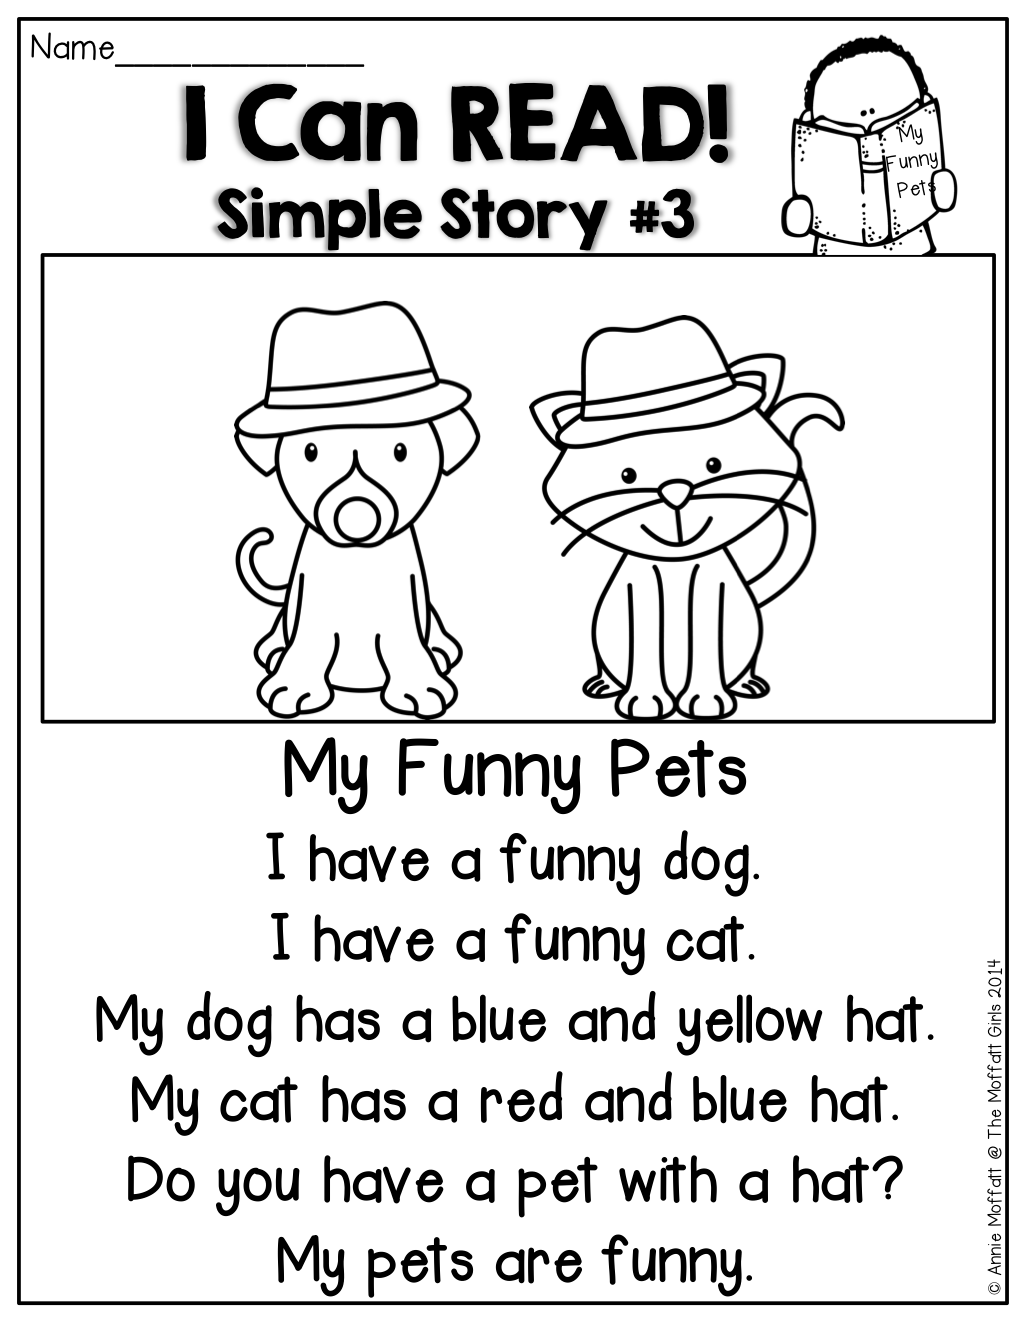 Reading Worksheets For Kindergarten At Duckduckgo With